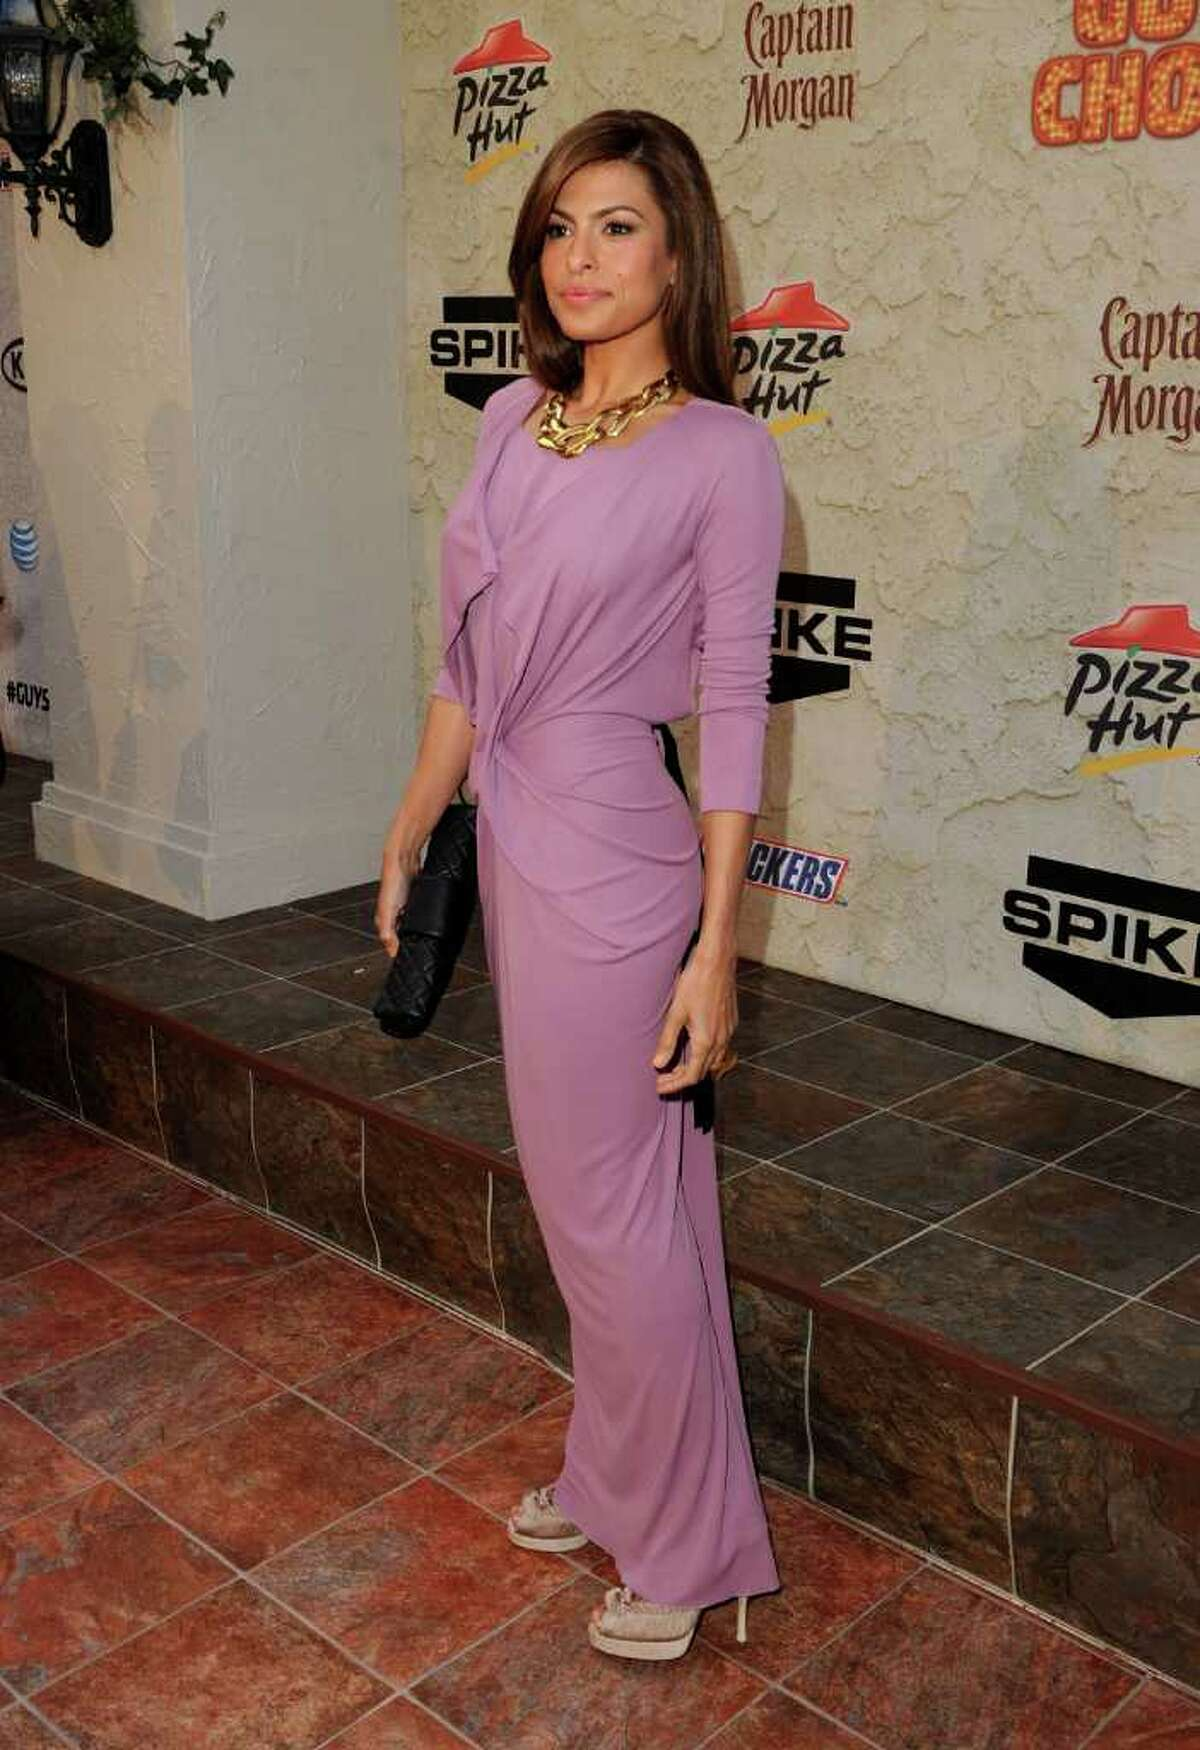 Actress Eva Mendes arrives at Spike TV's fifth annual Guys Choice Awards at Sony Pictures Studios in Culver City, Calif., on Saturday, June 4, 2011. The show airs on June 10.